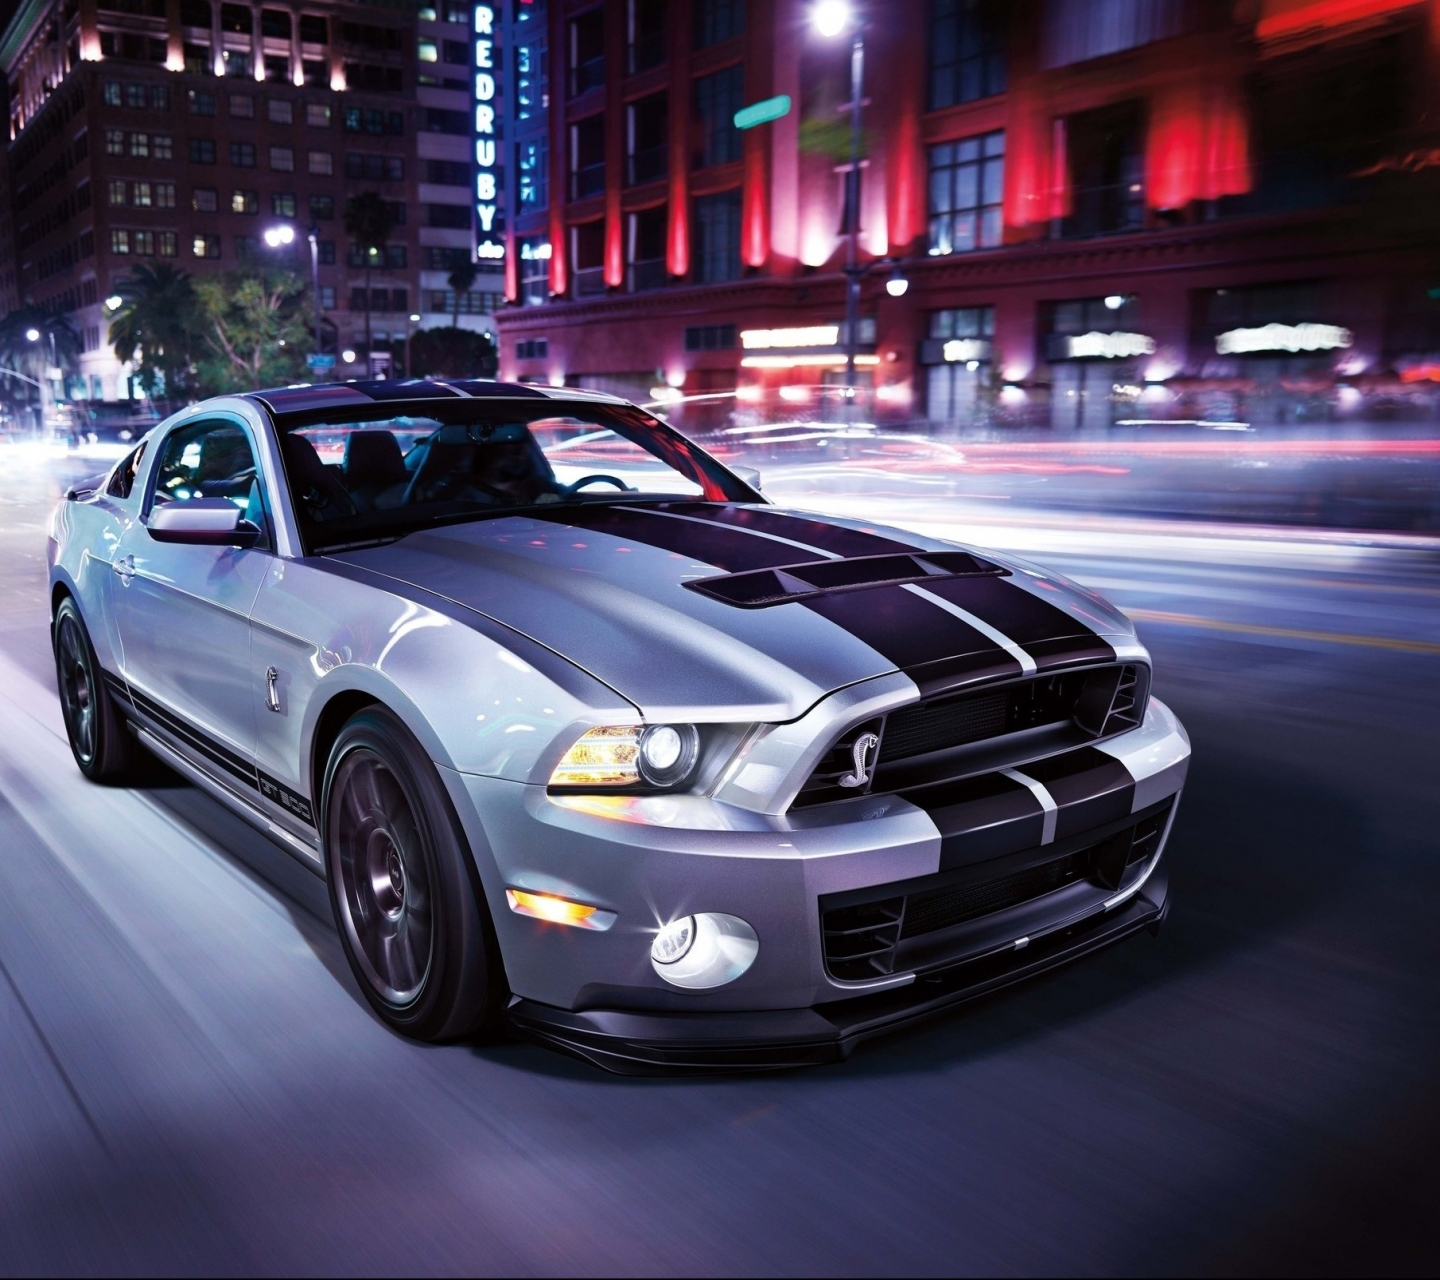 Vehiclesford mustang 1440x1280 wallpaper id 67032 mobile abyss vehicles ford mustang 1440x1280 mobile wallpaper voltagebd Image collections